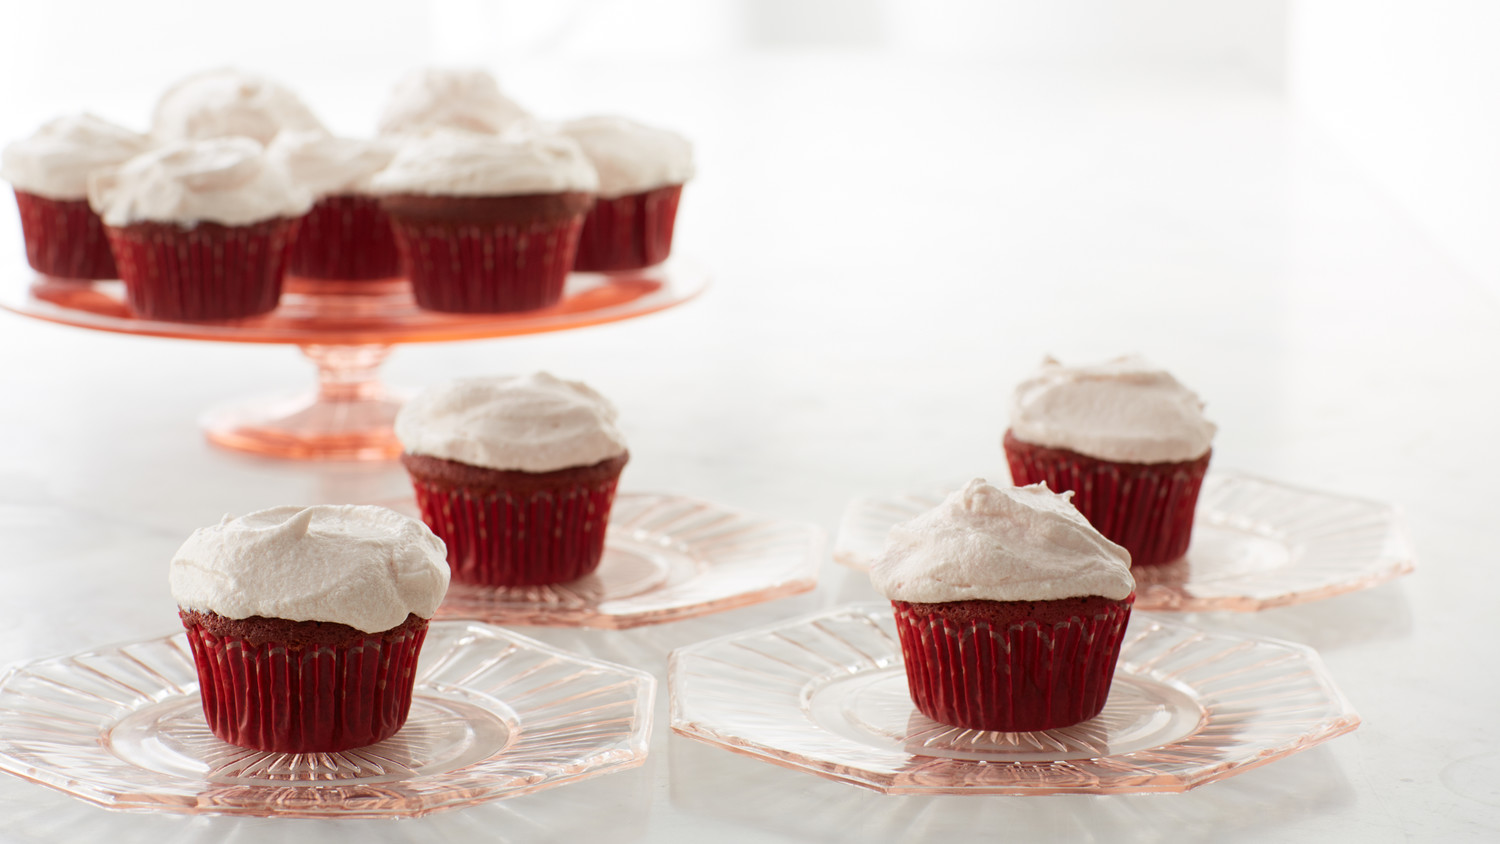 Red Velvet Cupcakes With Cream Cheese Frosting Recipe